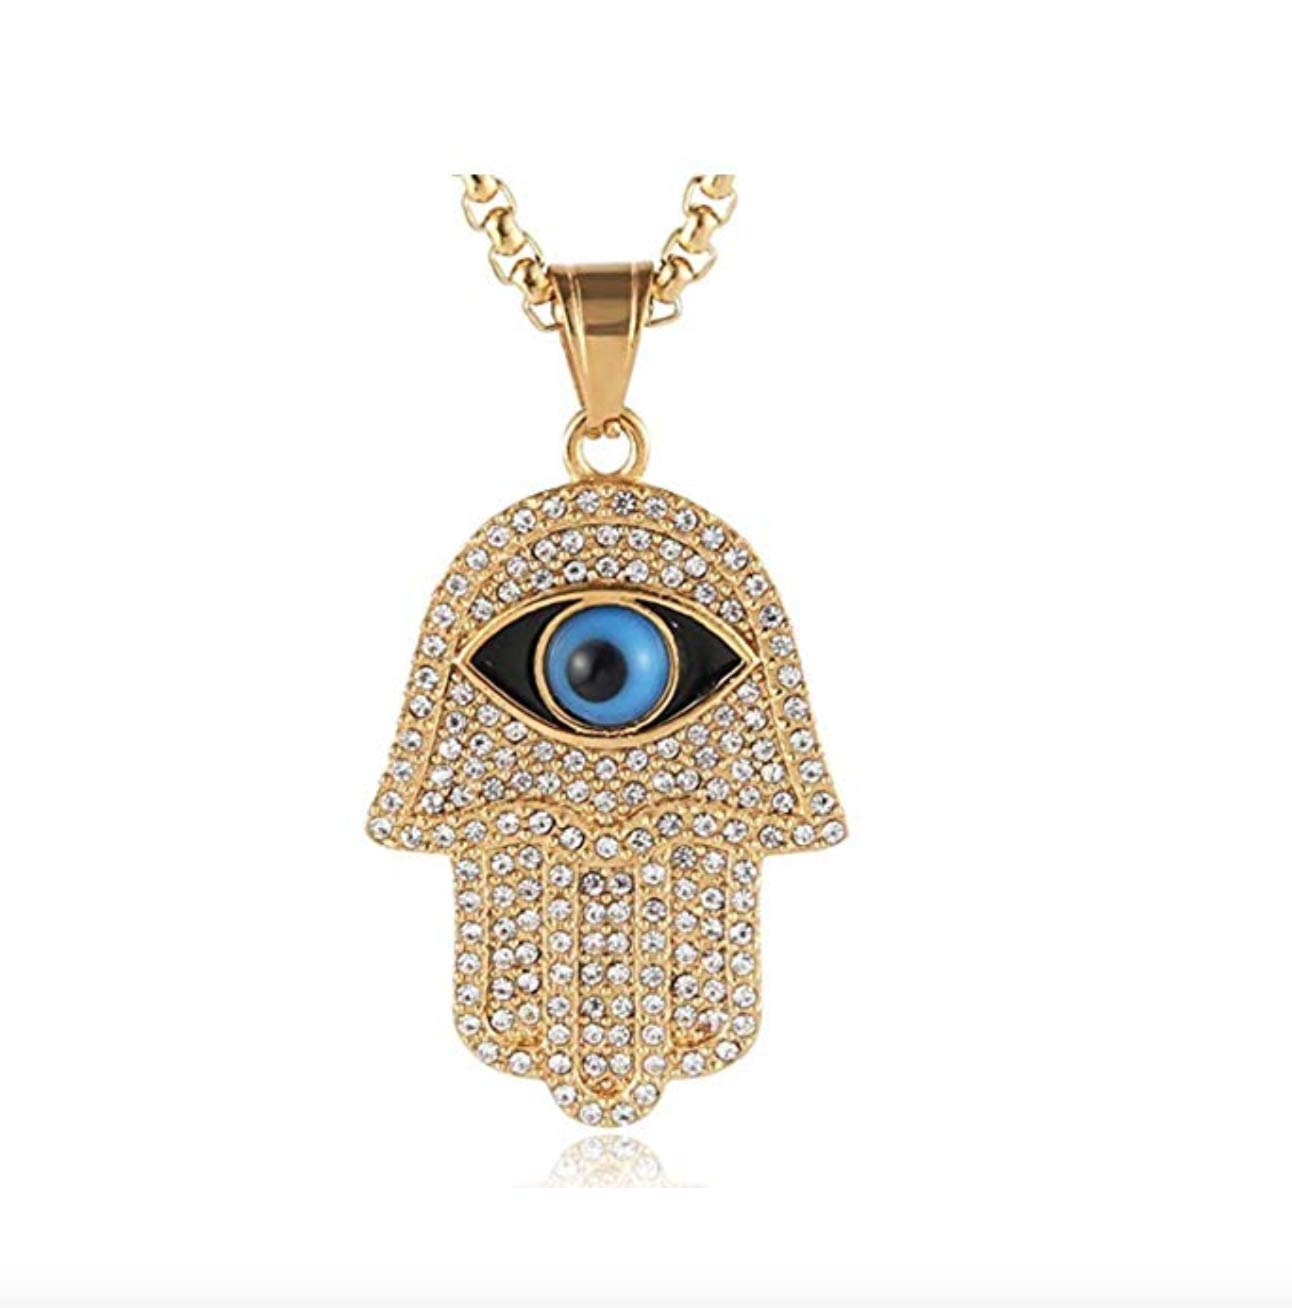 24K GP Necklace. Islamic Muslim Gold Color Chain. Hand of Fatima Necklace. Hamsa Hand Chain. Kevin Gates Hip Hop Jewelry .24in